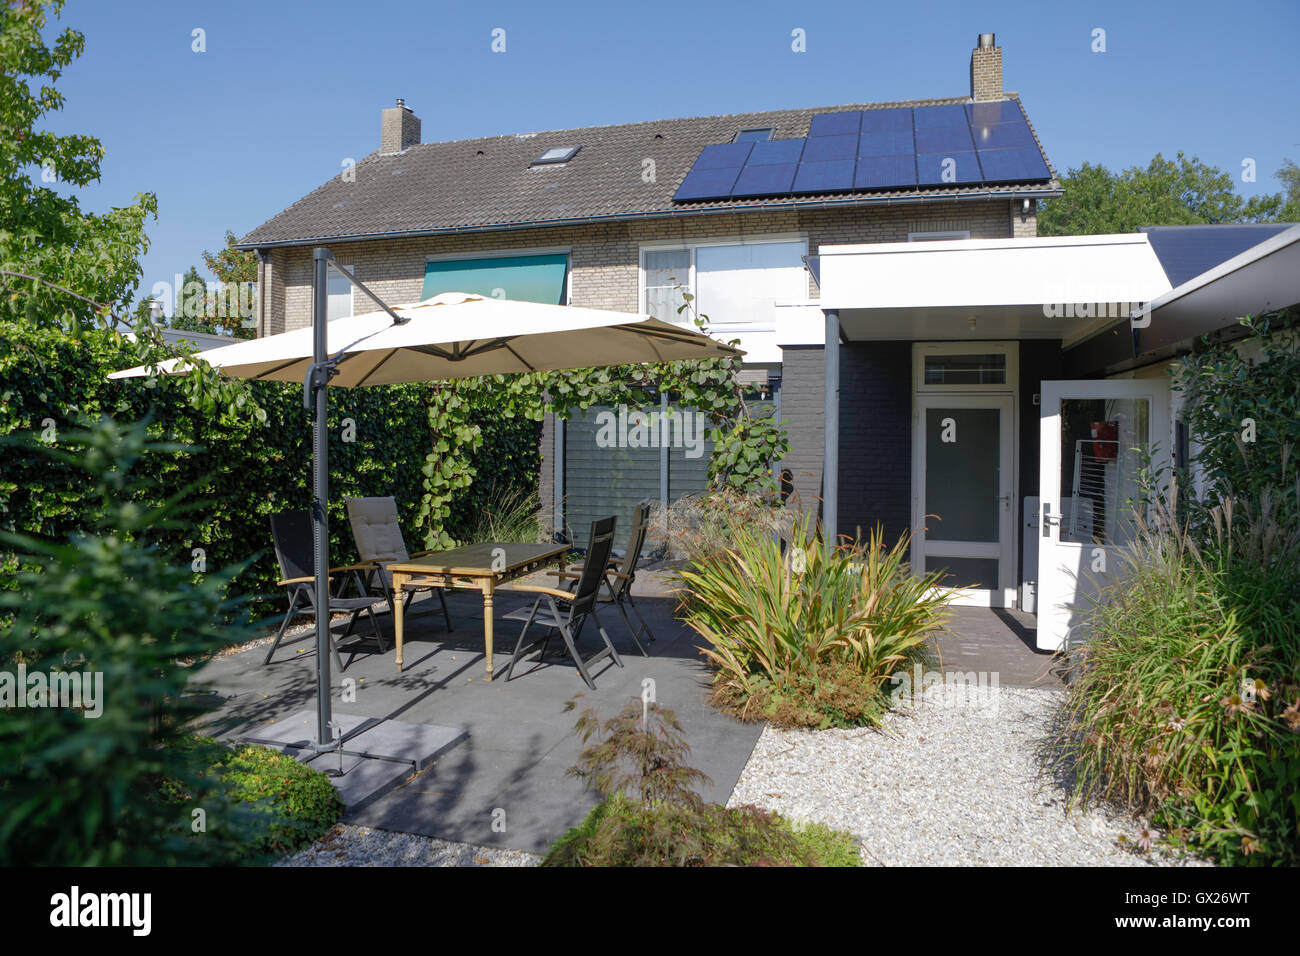 House with PV solar panels on a sunny profitable day in the Netherlands, Europe - Stock Image